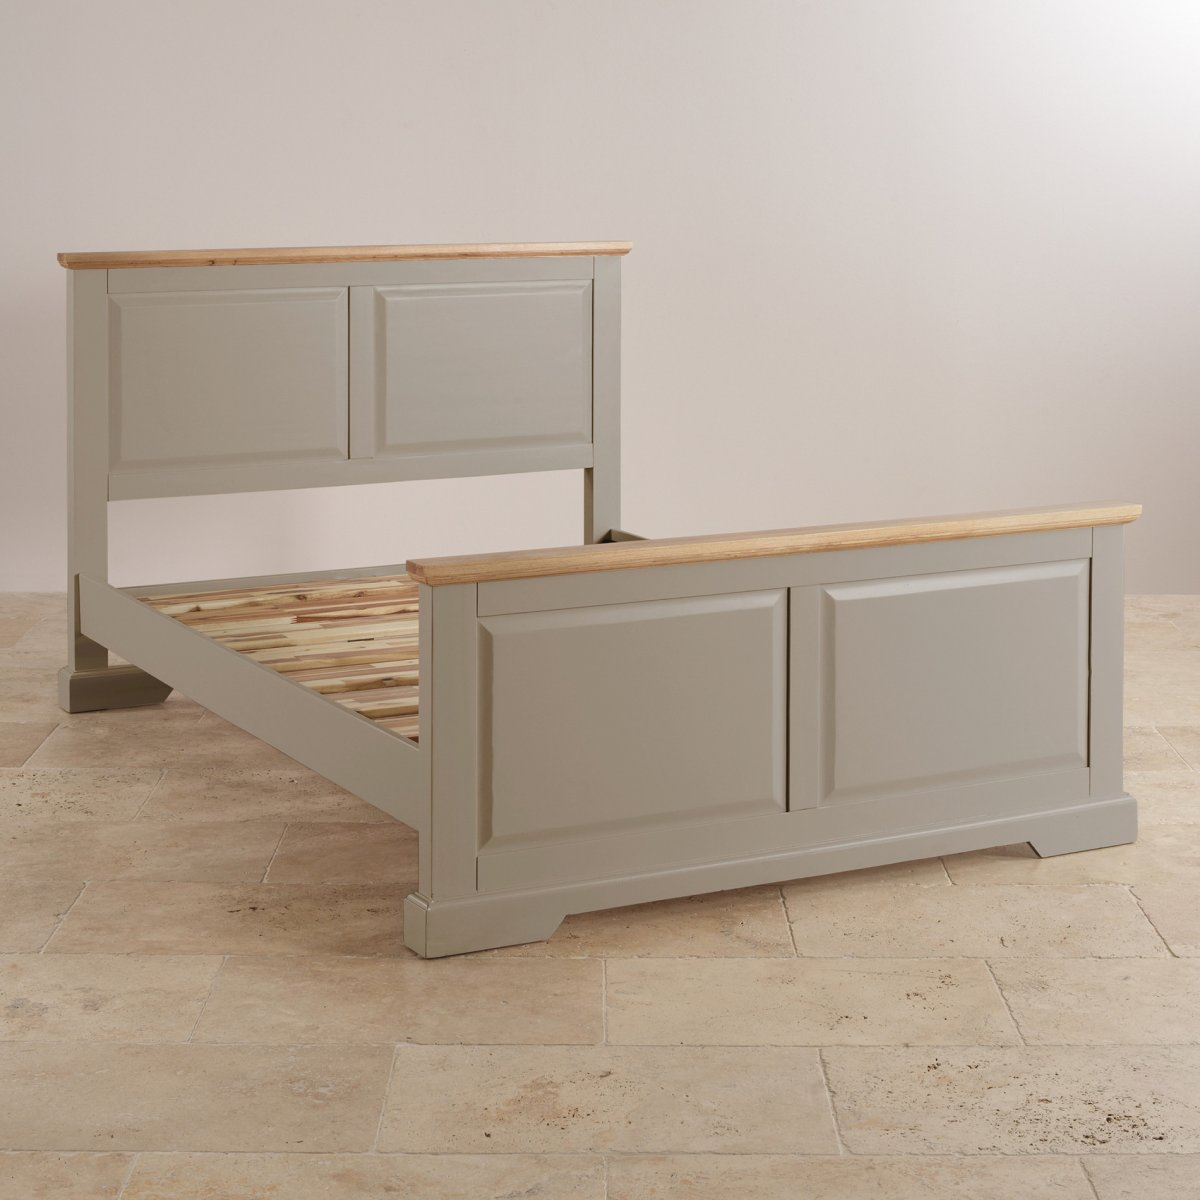 Grey Wooden Double Bed Part - 50: Sorry, Your Browser Does Not Support This Video.